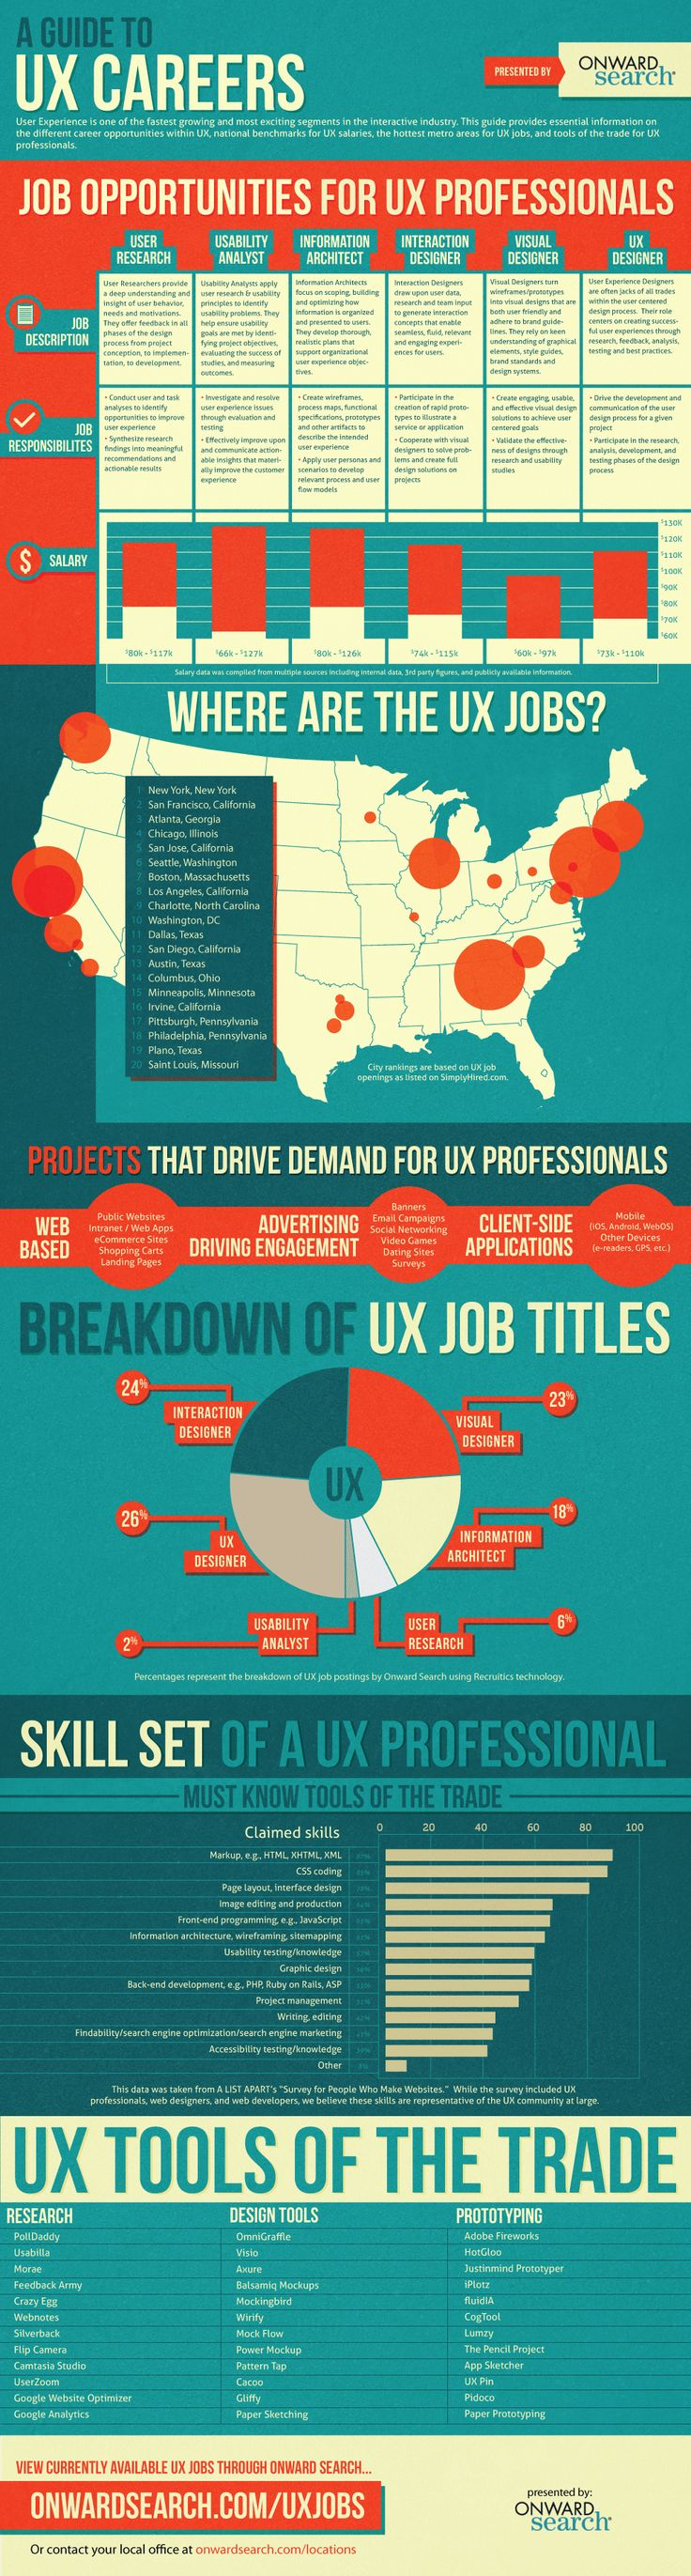 A guide to UX careers #infographic